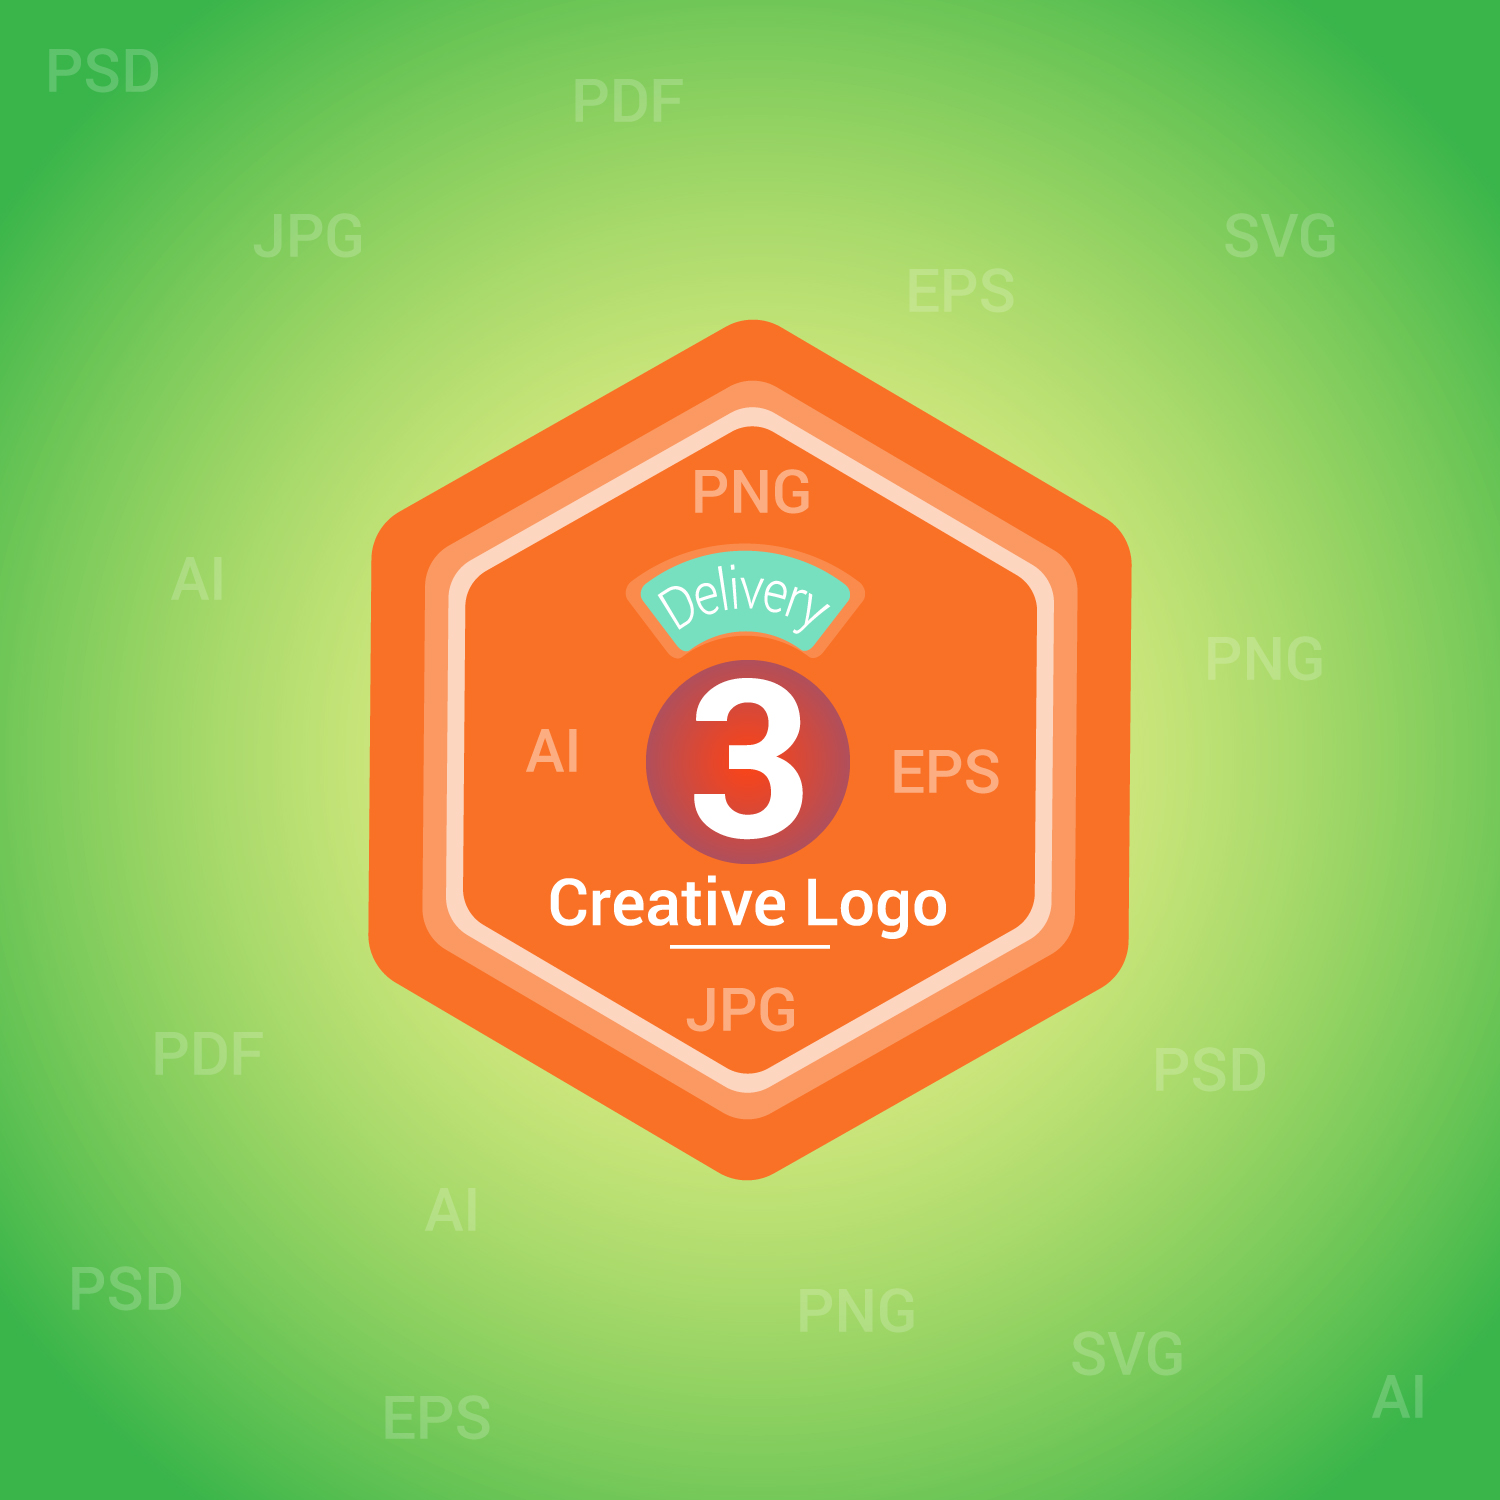 I can Deliver 3 Creative logo concepts for your Business.